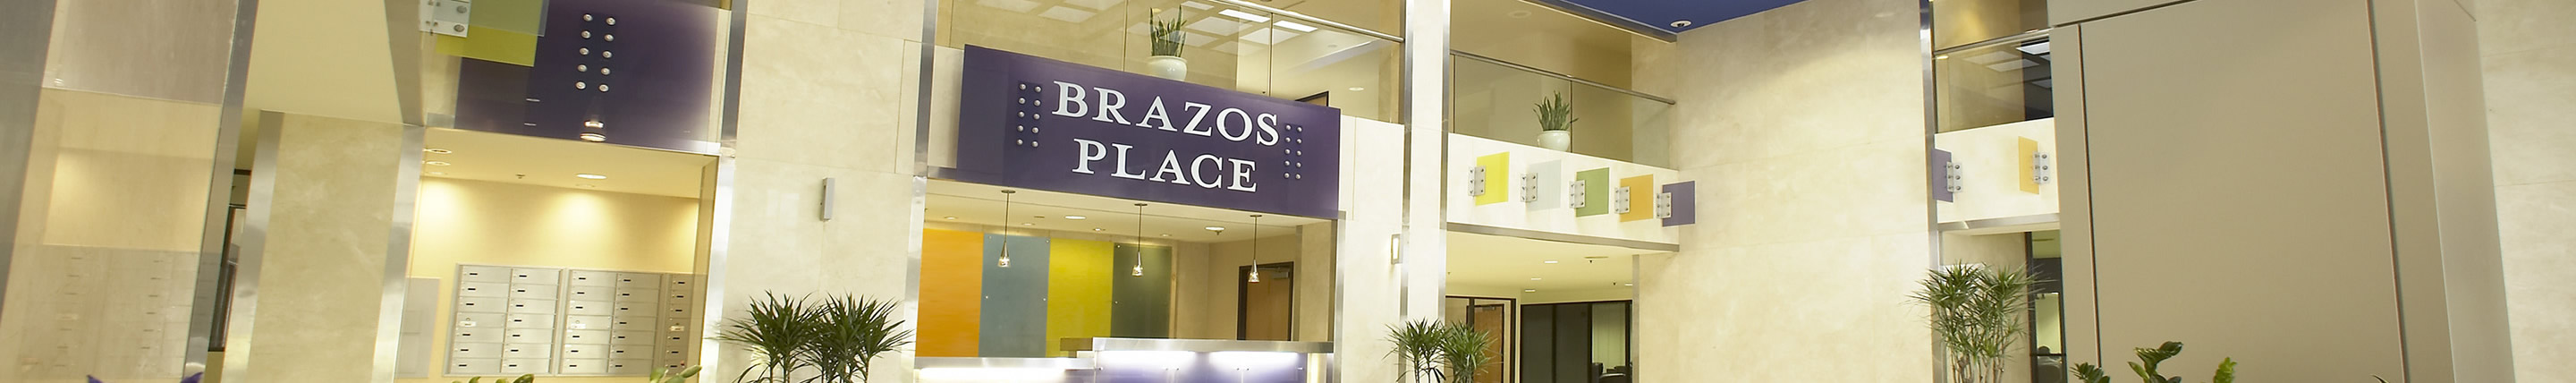 crop-Brazos-Photo-Lobby-00021141